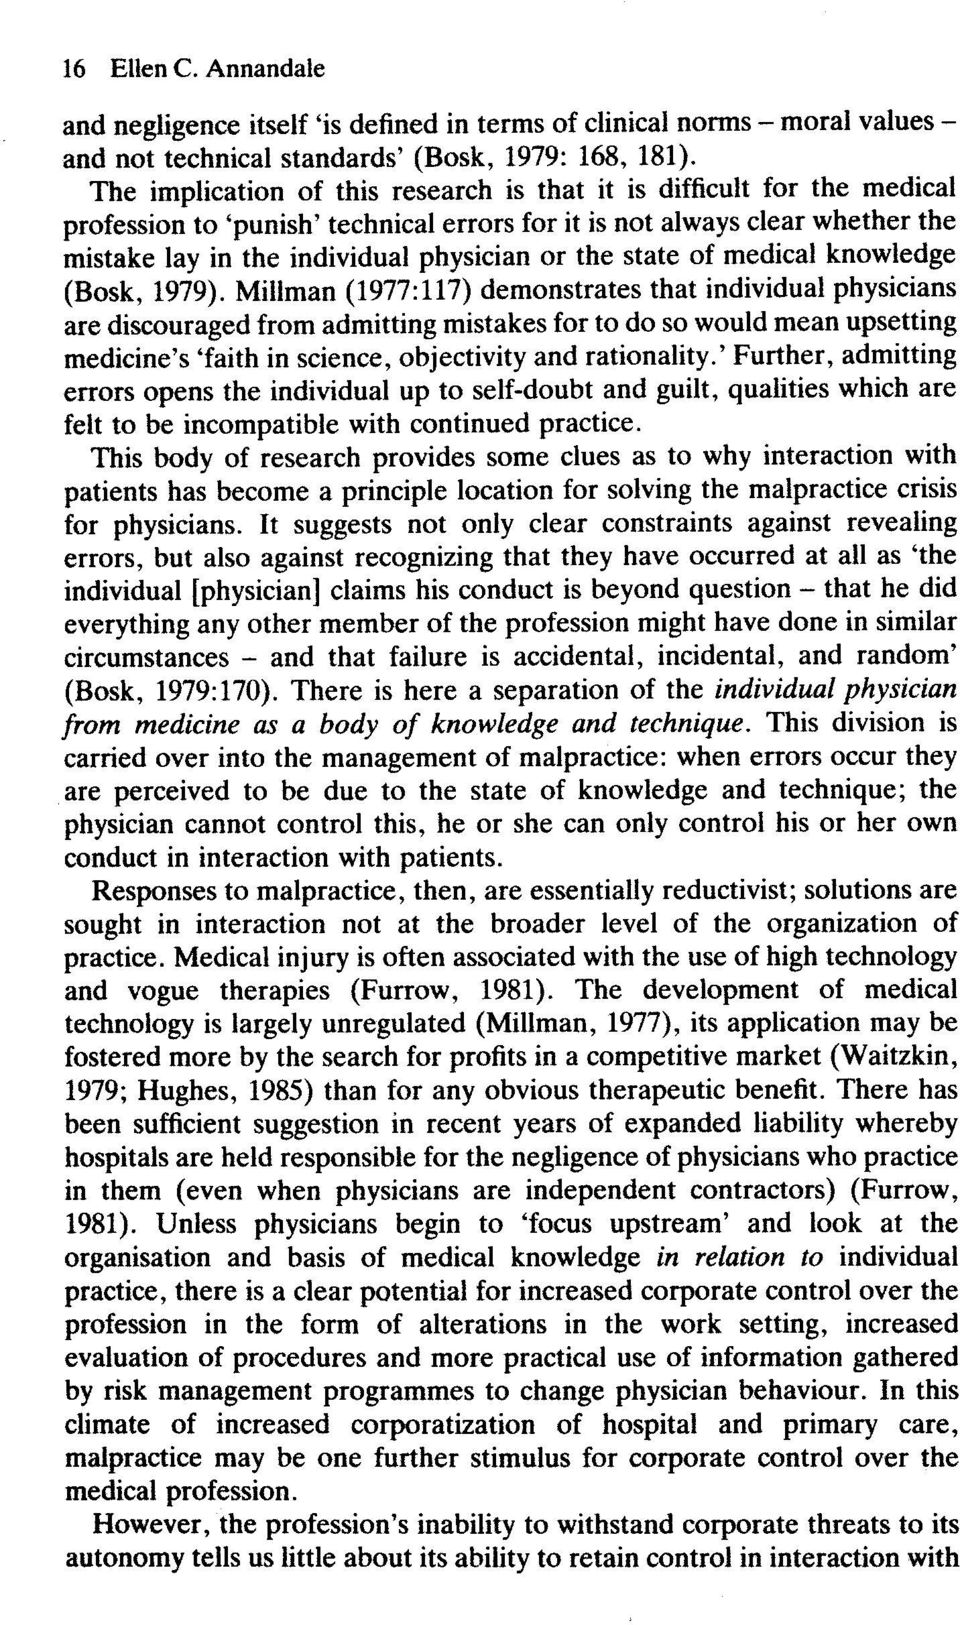 state of medical knowledge (Bosk, 1979).